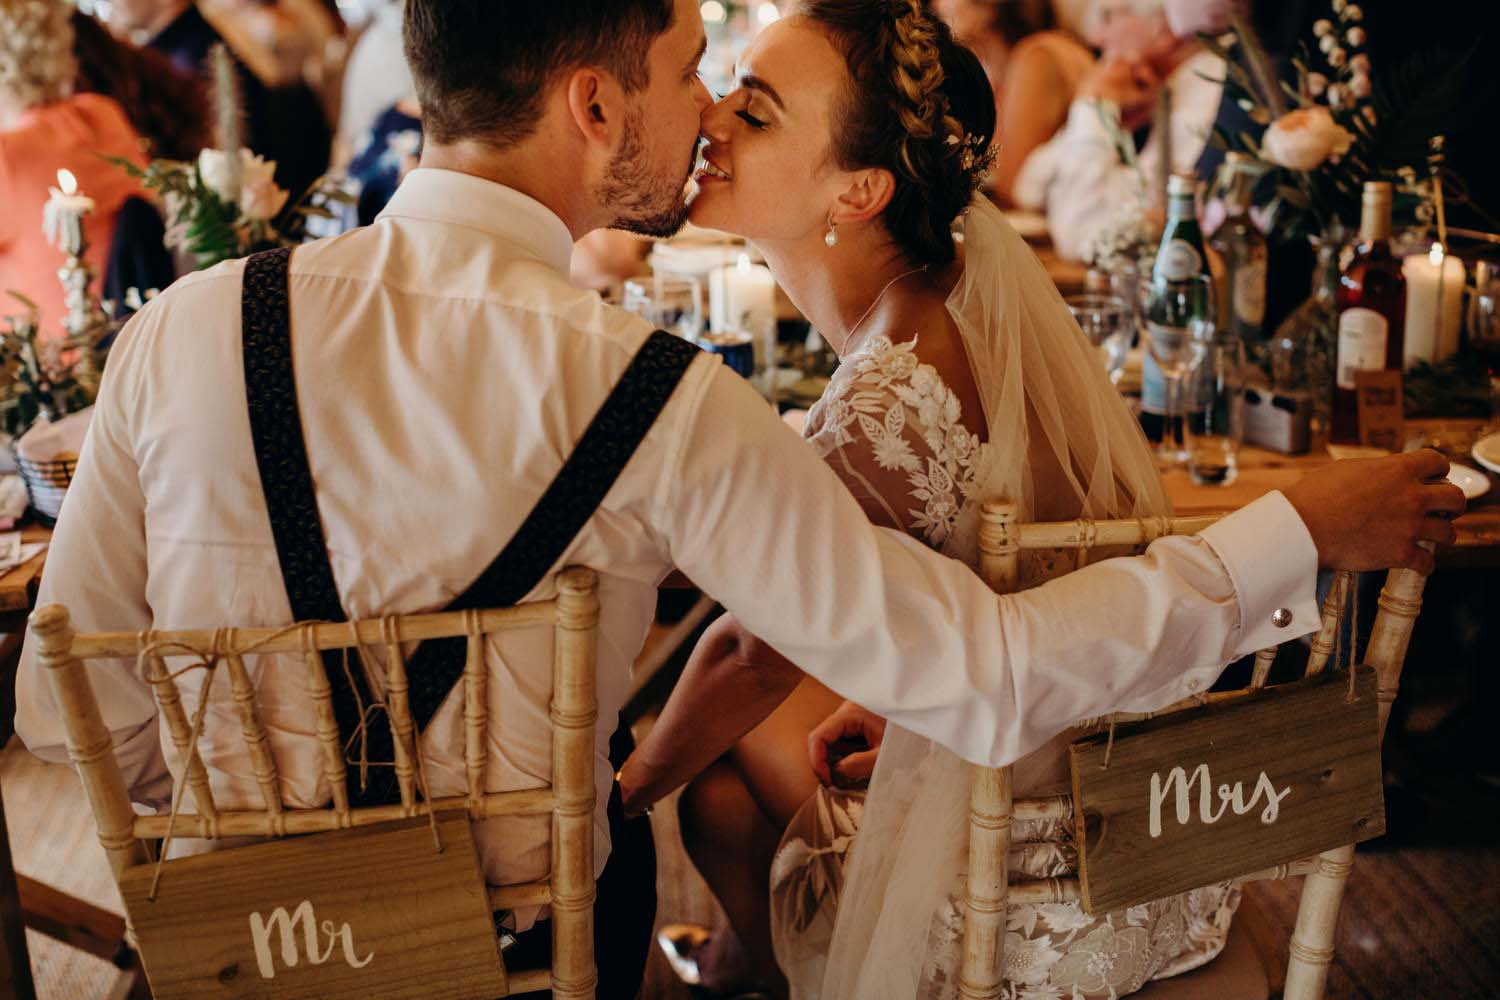 Bride and groom kiss in Tipi wedding